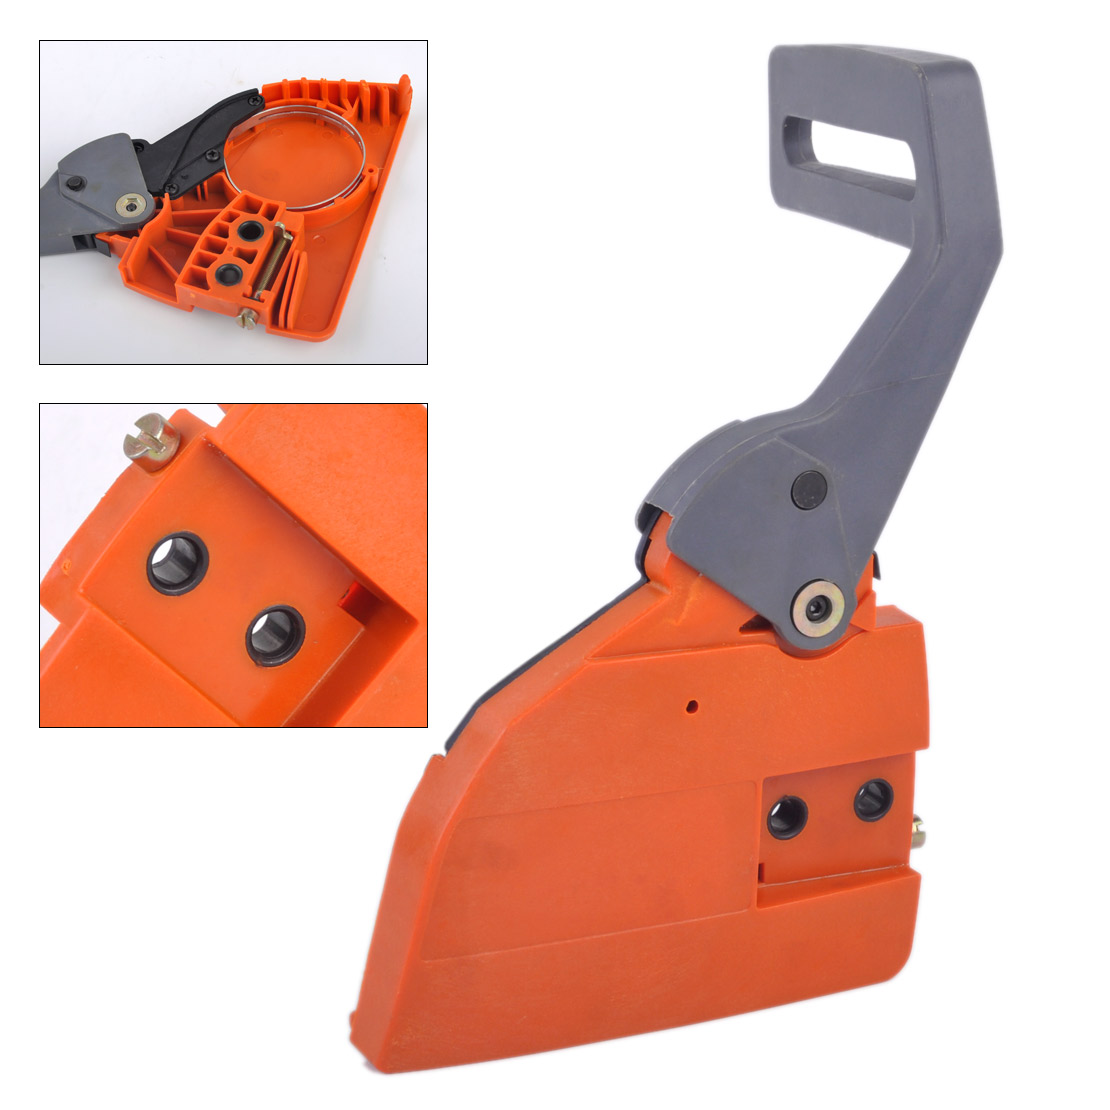 LETAOSK New Clutch Sprocket Chain Cover Brake Handle Assy Fit for HUSQVARNA 136 137 141 142 ChainsawLETAOSK New Clutch Sprocket Chain Cover Brake Handle Assy Fit for HUSQVARNA 136 137 141 142 Chainsaw